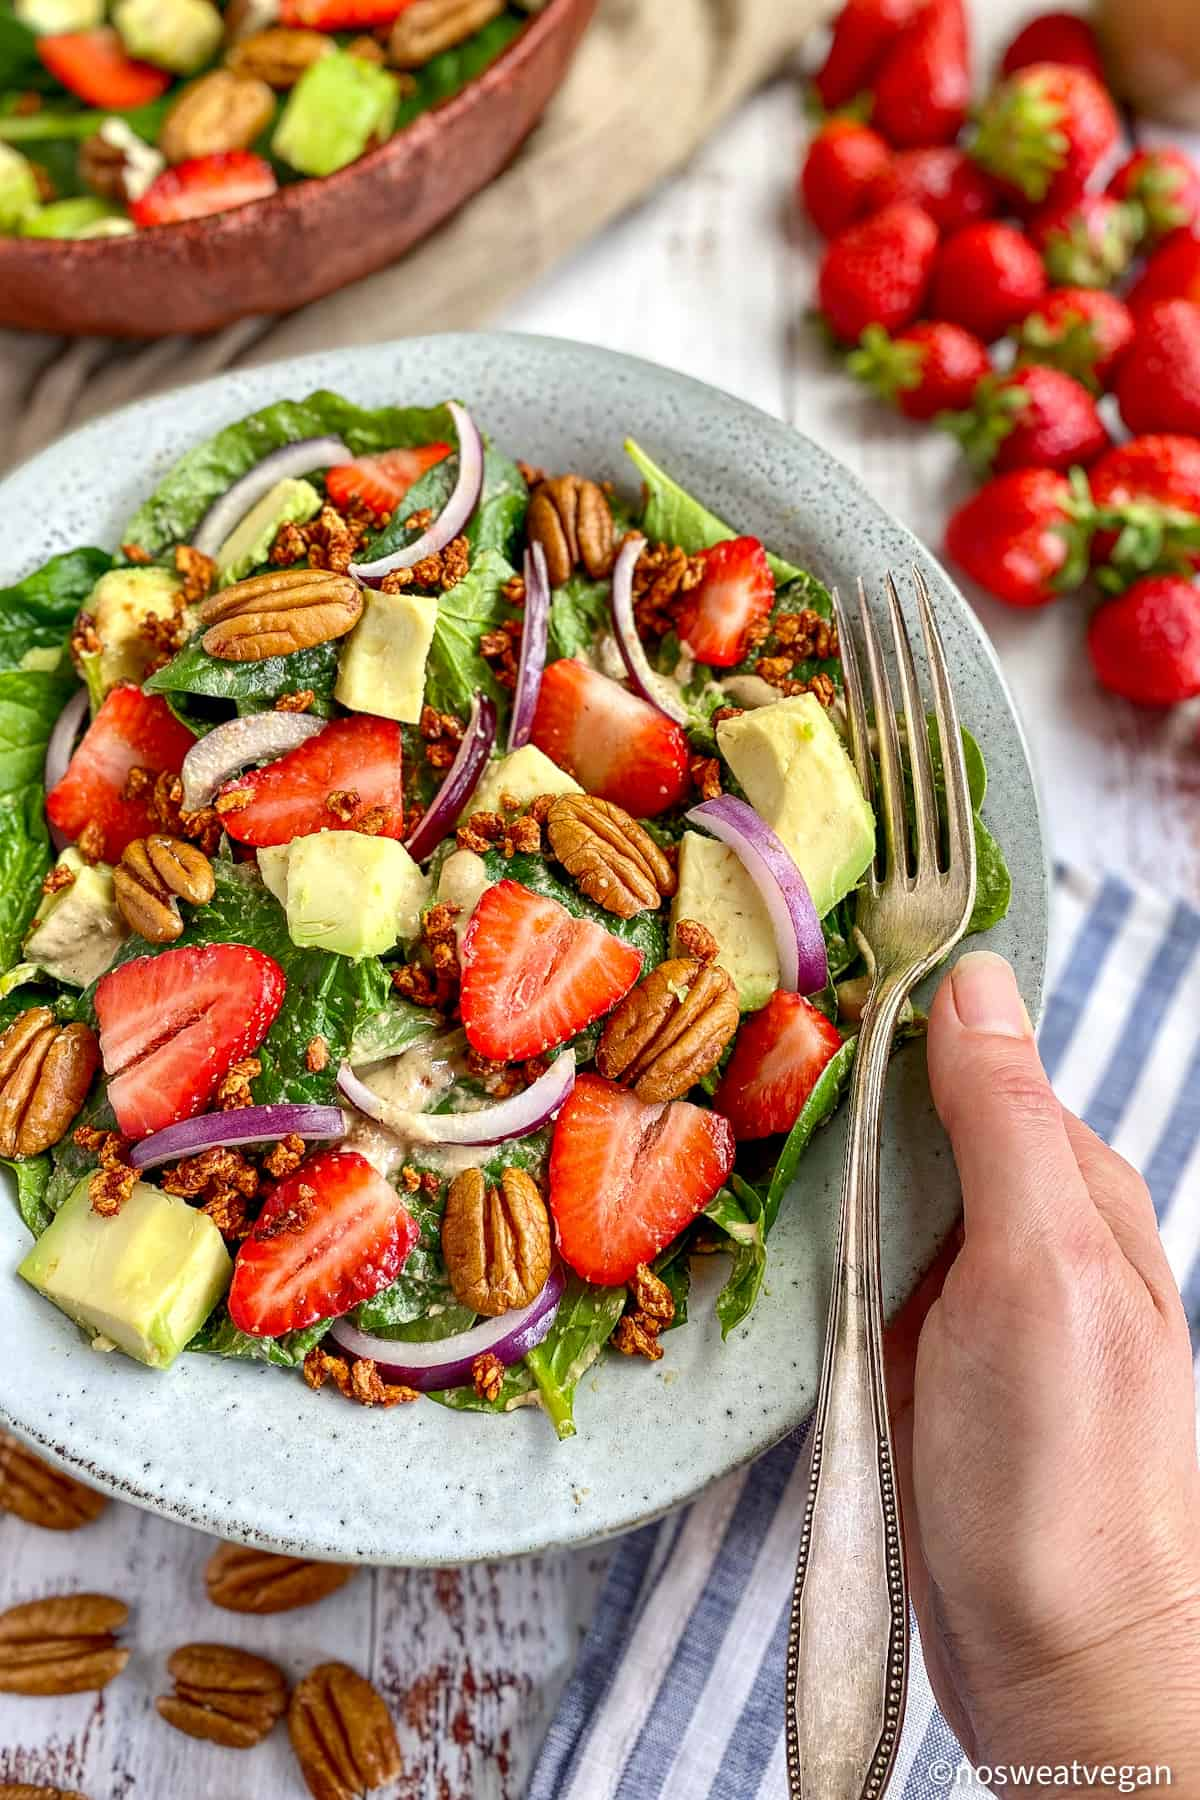 Bowl with vegan spinach strawberry salad.